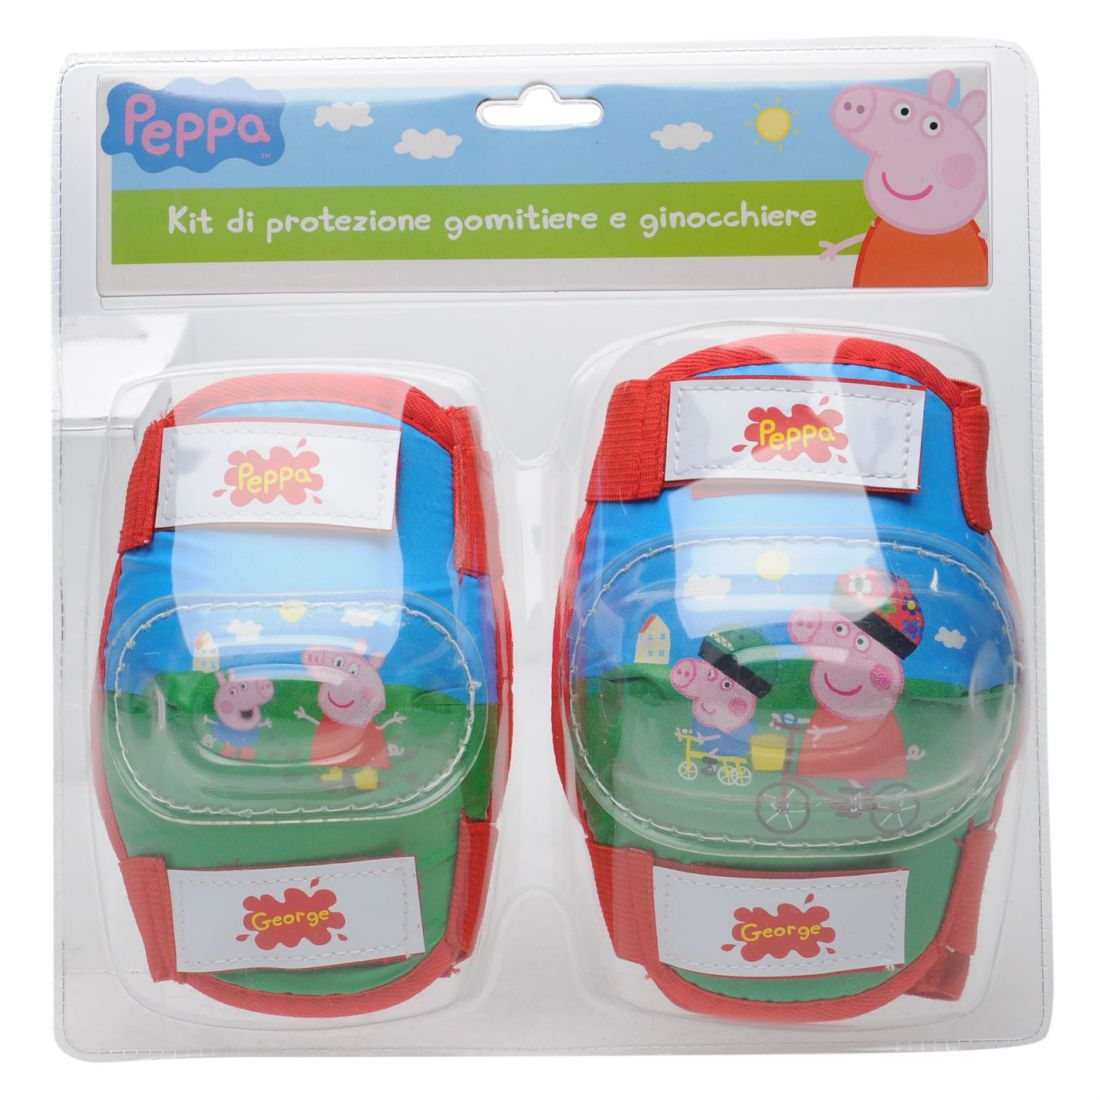 ad5d8010f4 Peppa Unisex Pig Pad CL83 Cycle 5057816016874